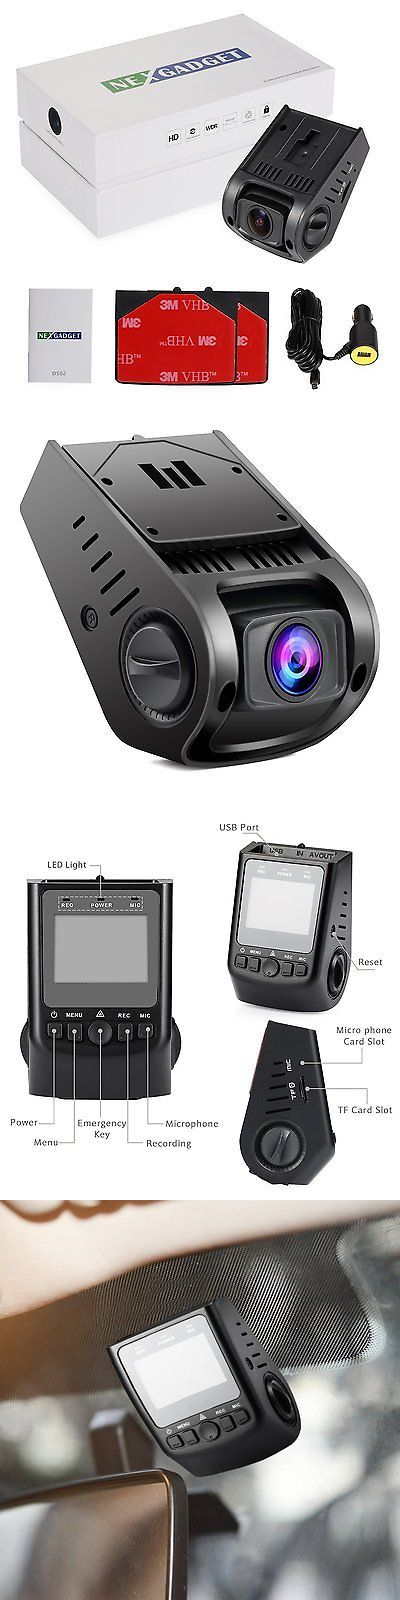 Digital Video Recorders Cards: Nexgadget Dash Cam 170°Wide Angle Full Hd 1080P Mini Car Dashboard Camera... -> BUY IT NOW ONLY: $54.87 on eBay!